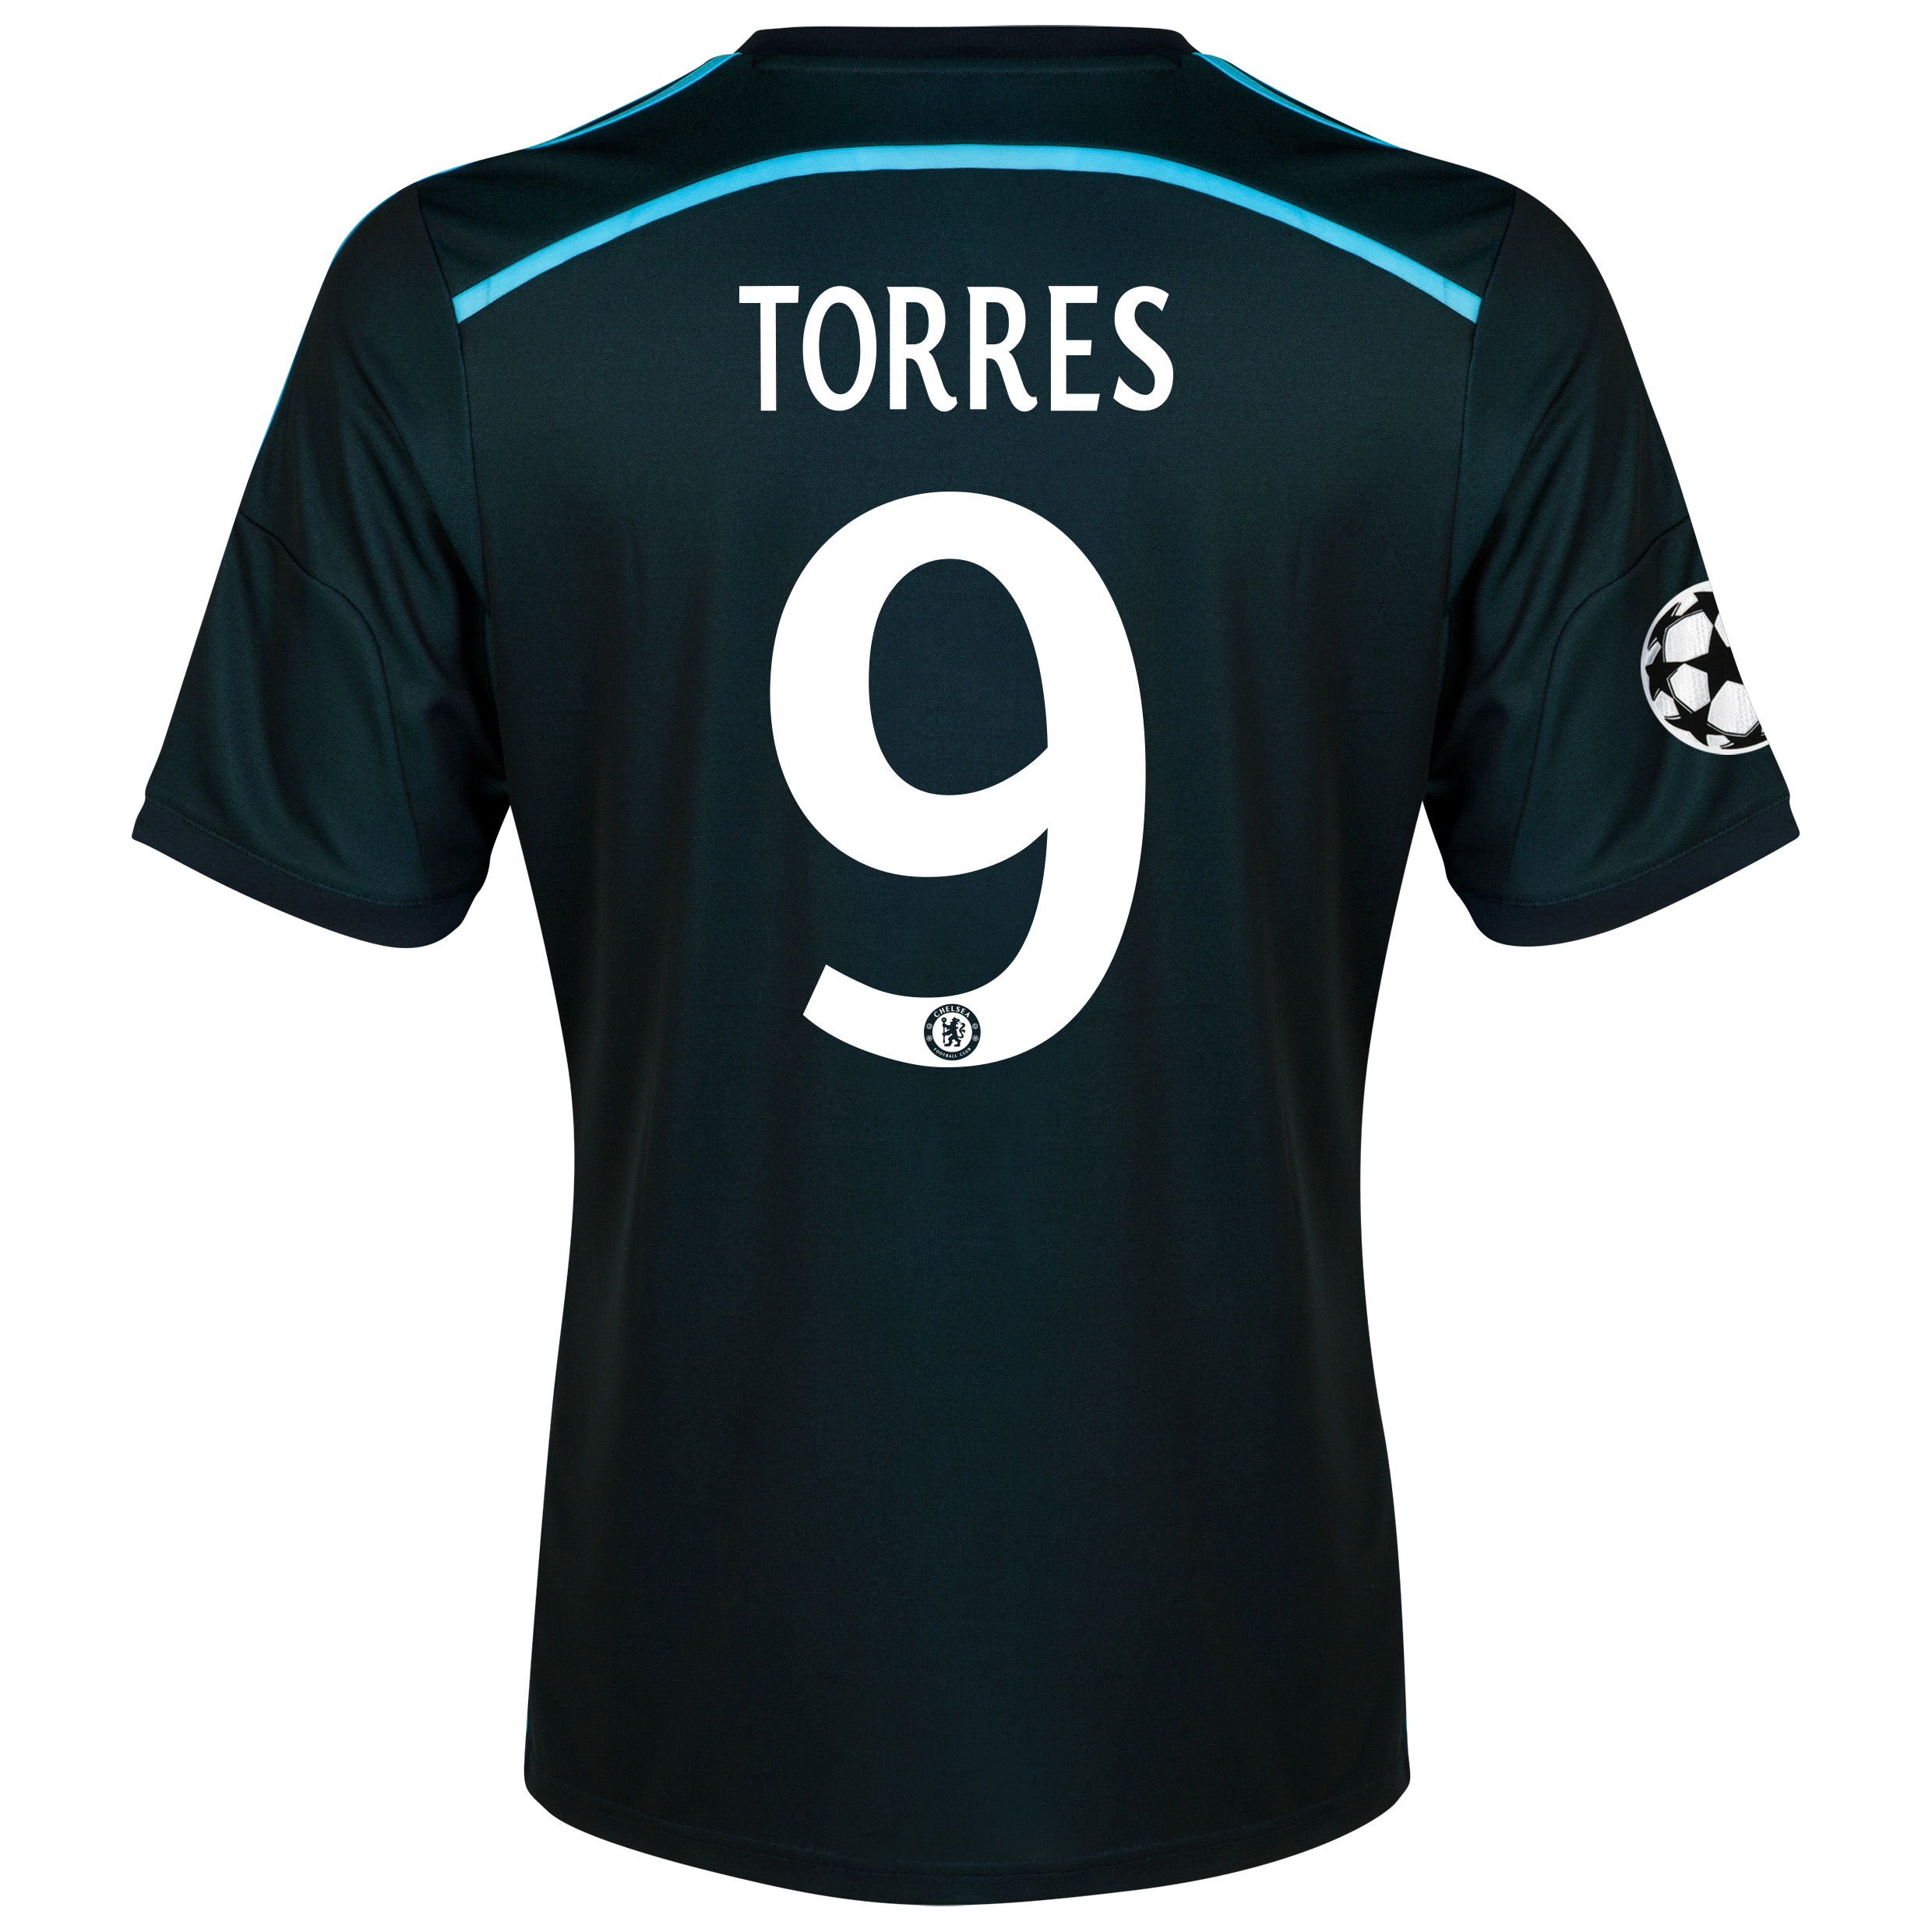 Chelsea UEFA Champions League Third Shirt 2014/15 with Torres 9 printing